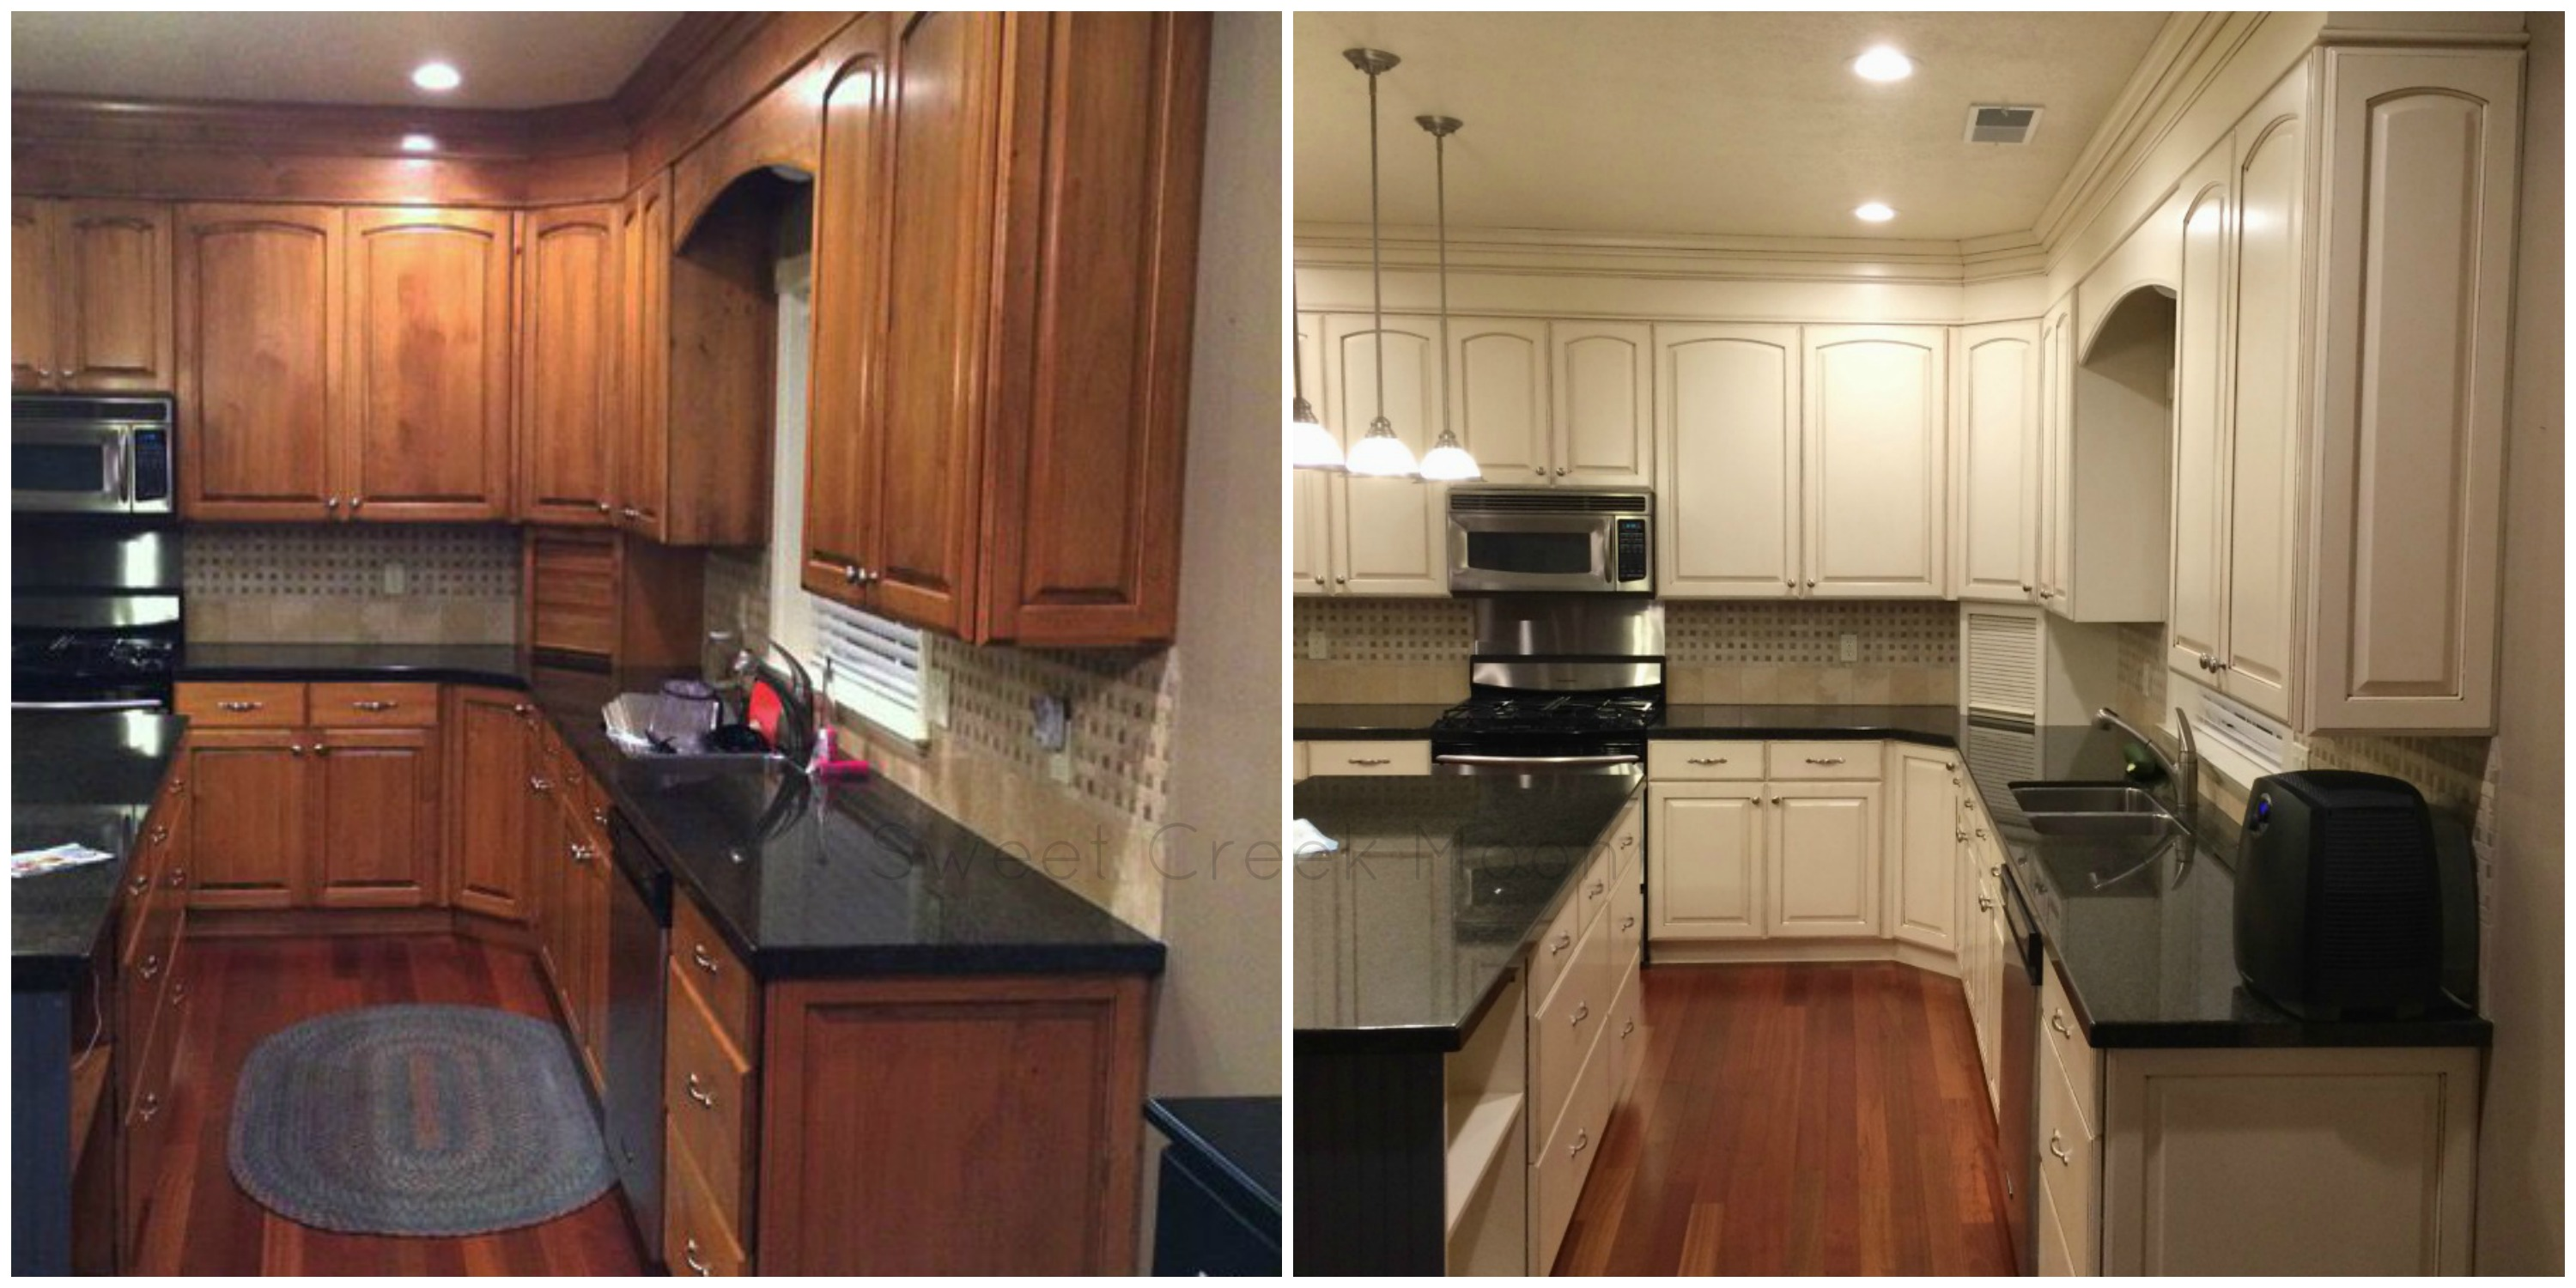 Kitchen cabinet makeover 2015 sweet creek moon for Cabinets before and after